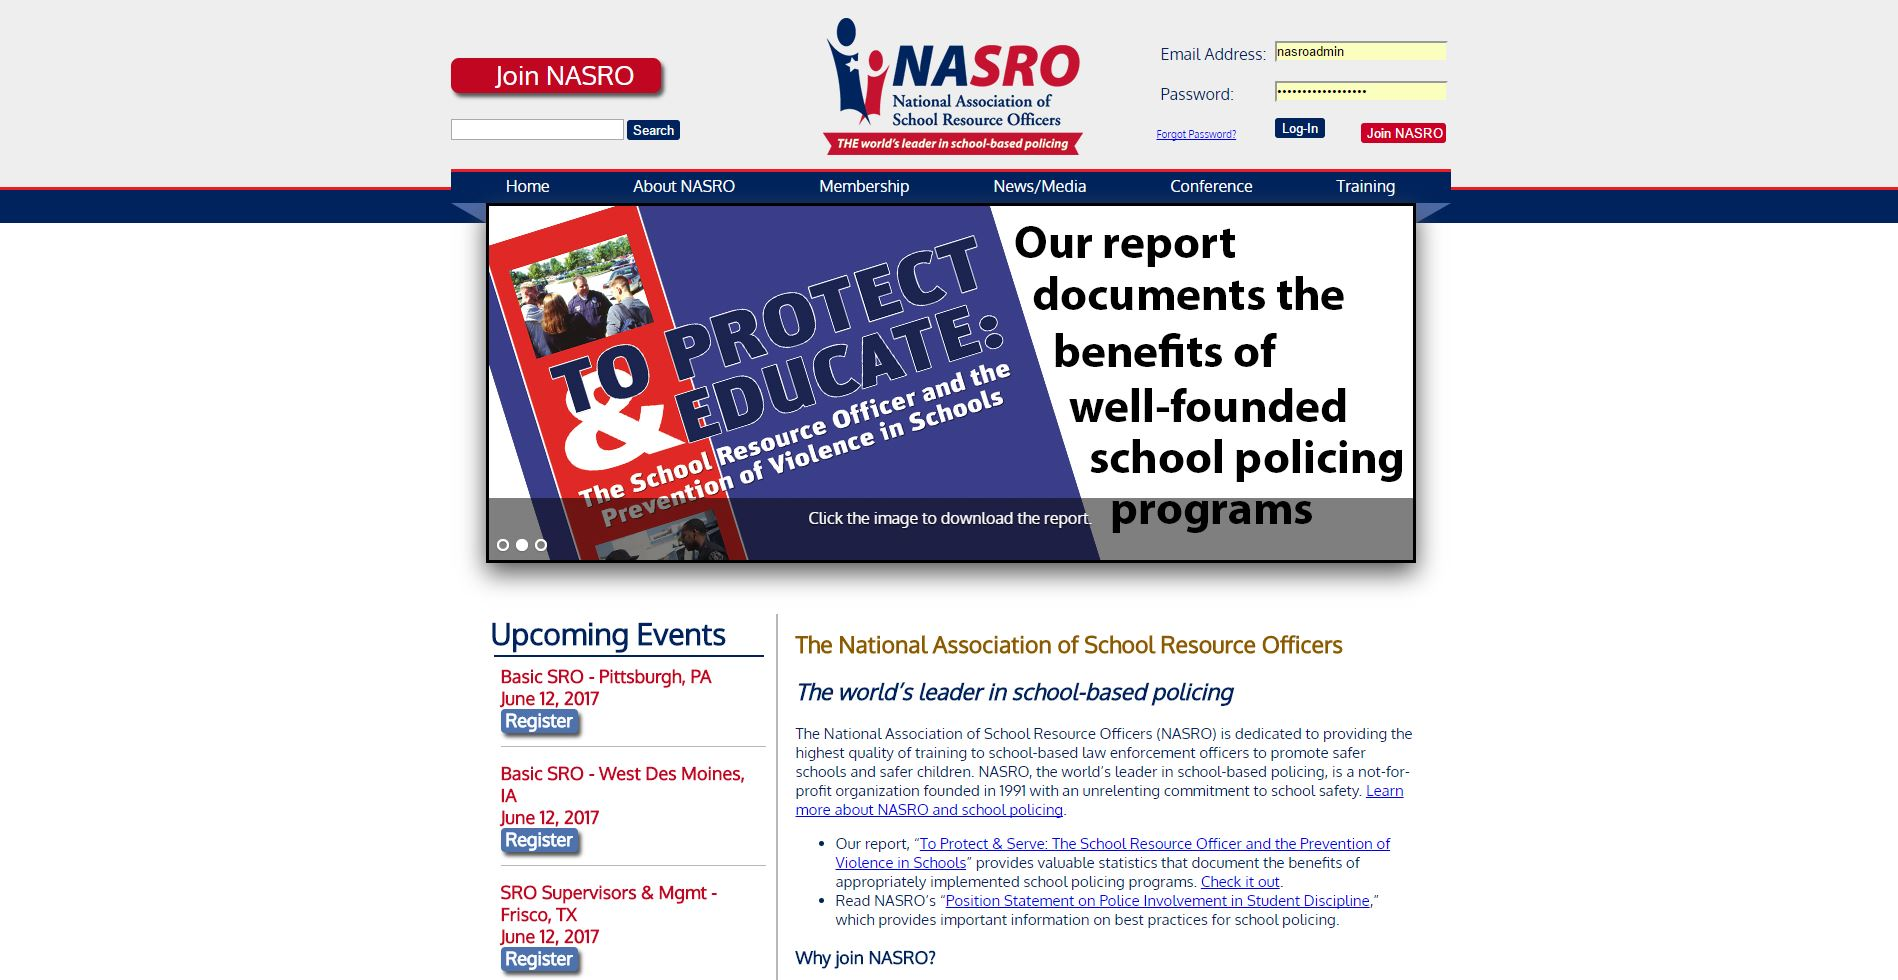 The National Association of School Resource Officers (NASRO) is dedicated to providing the highest quality of training to school-based law enforcement officers to promote safer schools and safer children.